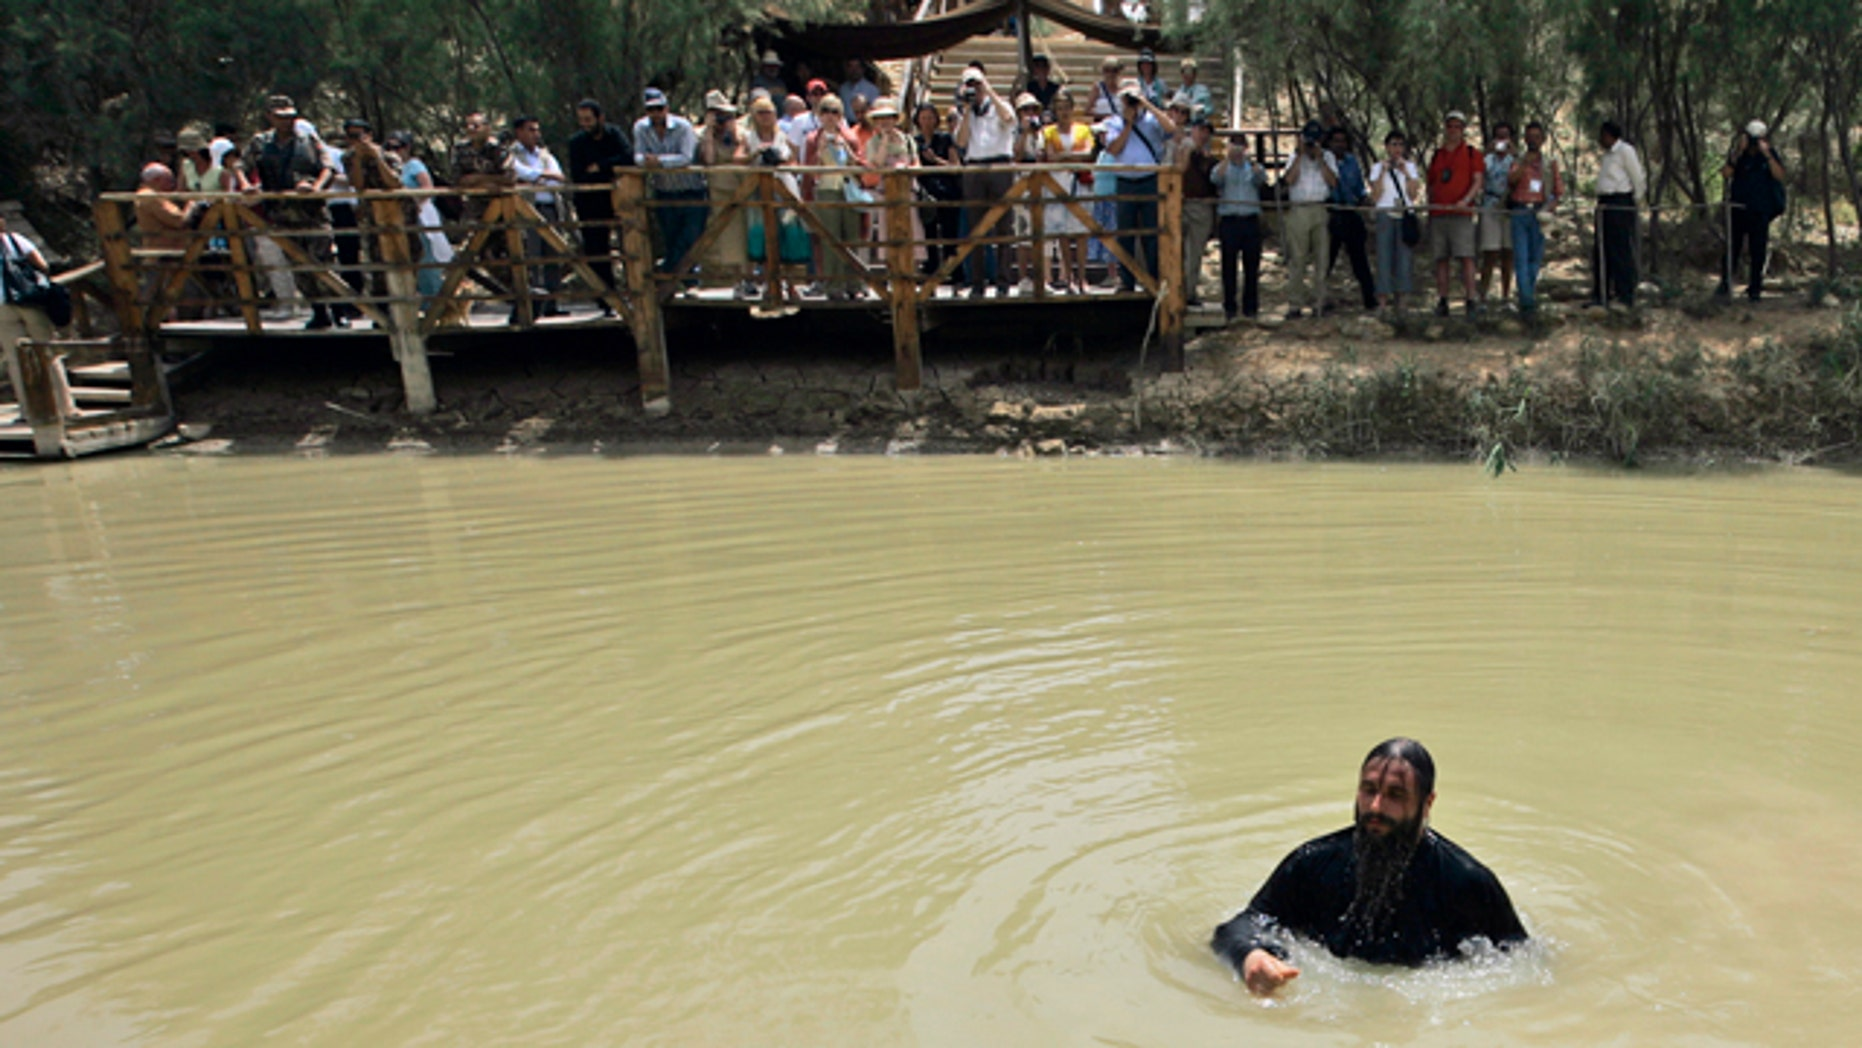 FILE - In this Tuesday, April 22, 2008 file photo, a Christian Greek Orthodox priest bathes in the Jordan River after it was blessed during a baptism ceremony in the waters of the Jordan River at Qasr-el Yahud near Jericho, in the West Bank, during Holy Week. (AP)